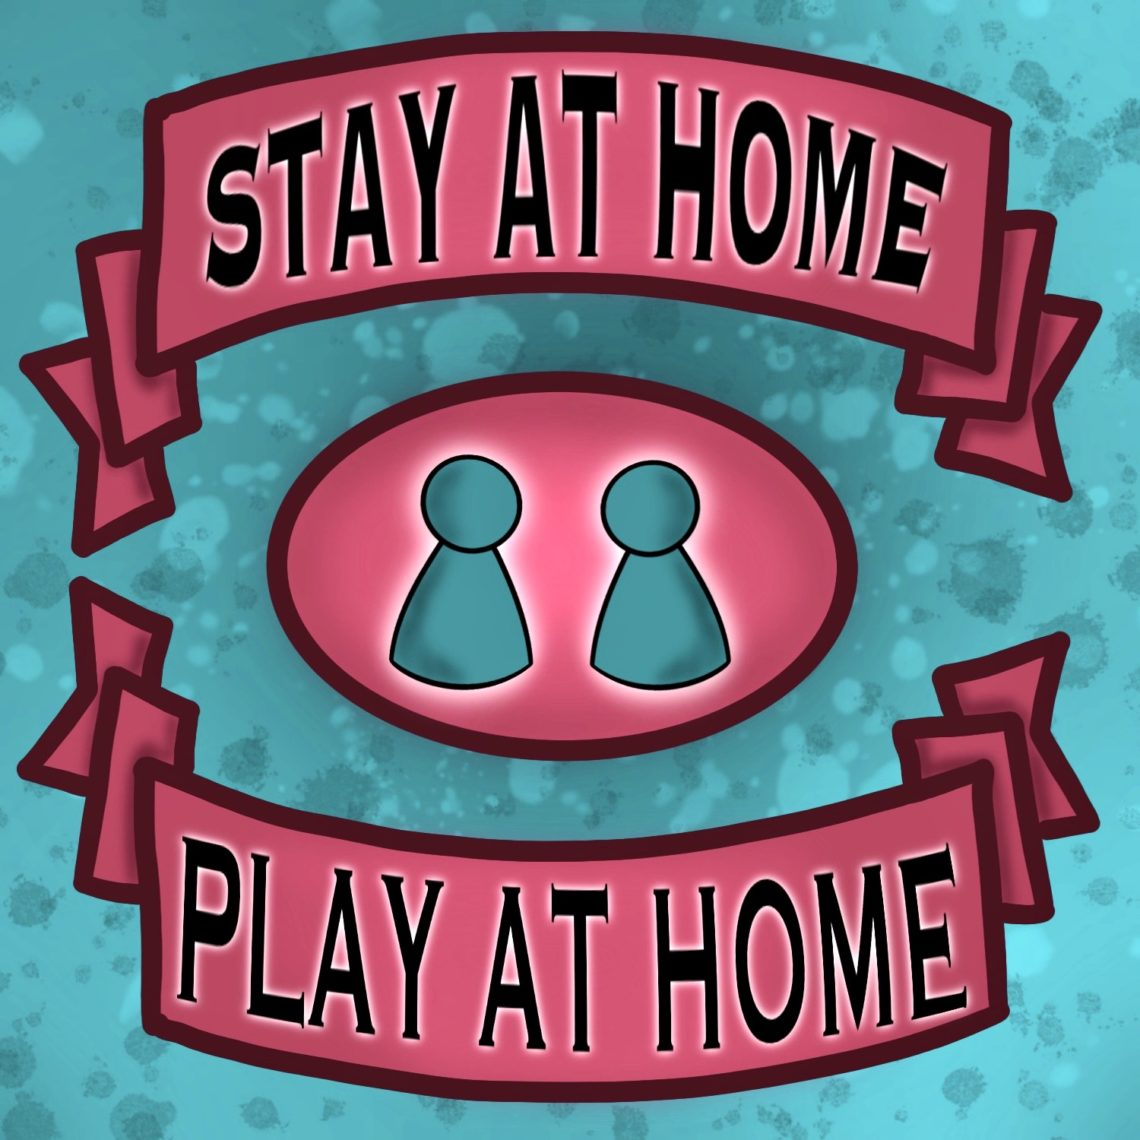 stay at home - play at home